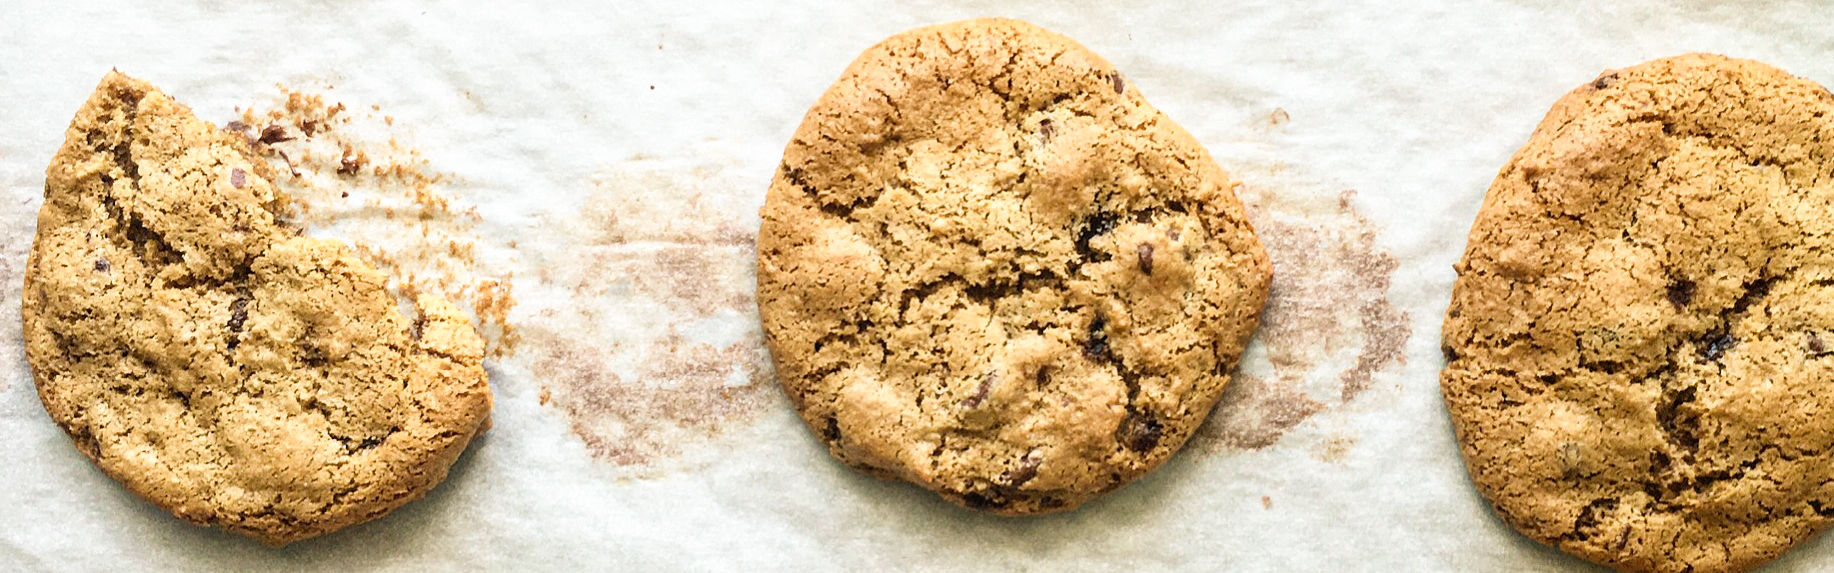 <p>Using prune-apple puree in place of butter gives chocolate chip cookies an addictive chewy quality while also making them dairy-free. In place of 113 g / 1/2 cup butter, this recipe uses 60 ml / 1/4 cup of prune-apple puree.</p>